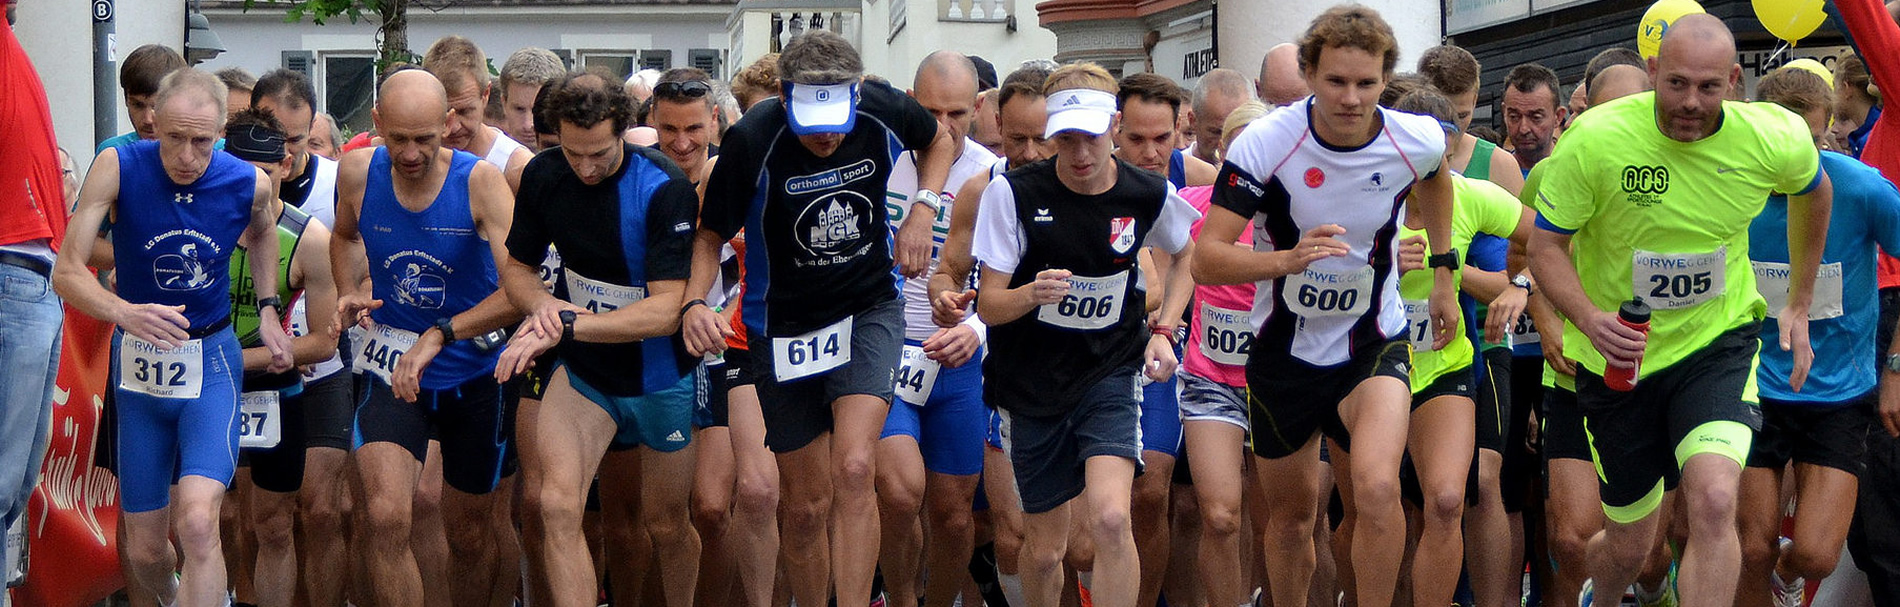 Bedburger Citylauf